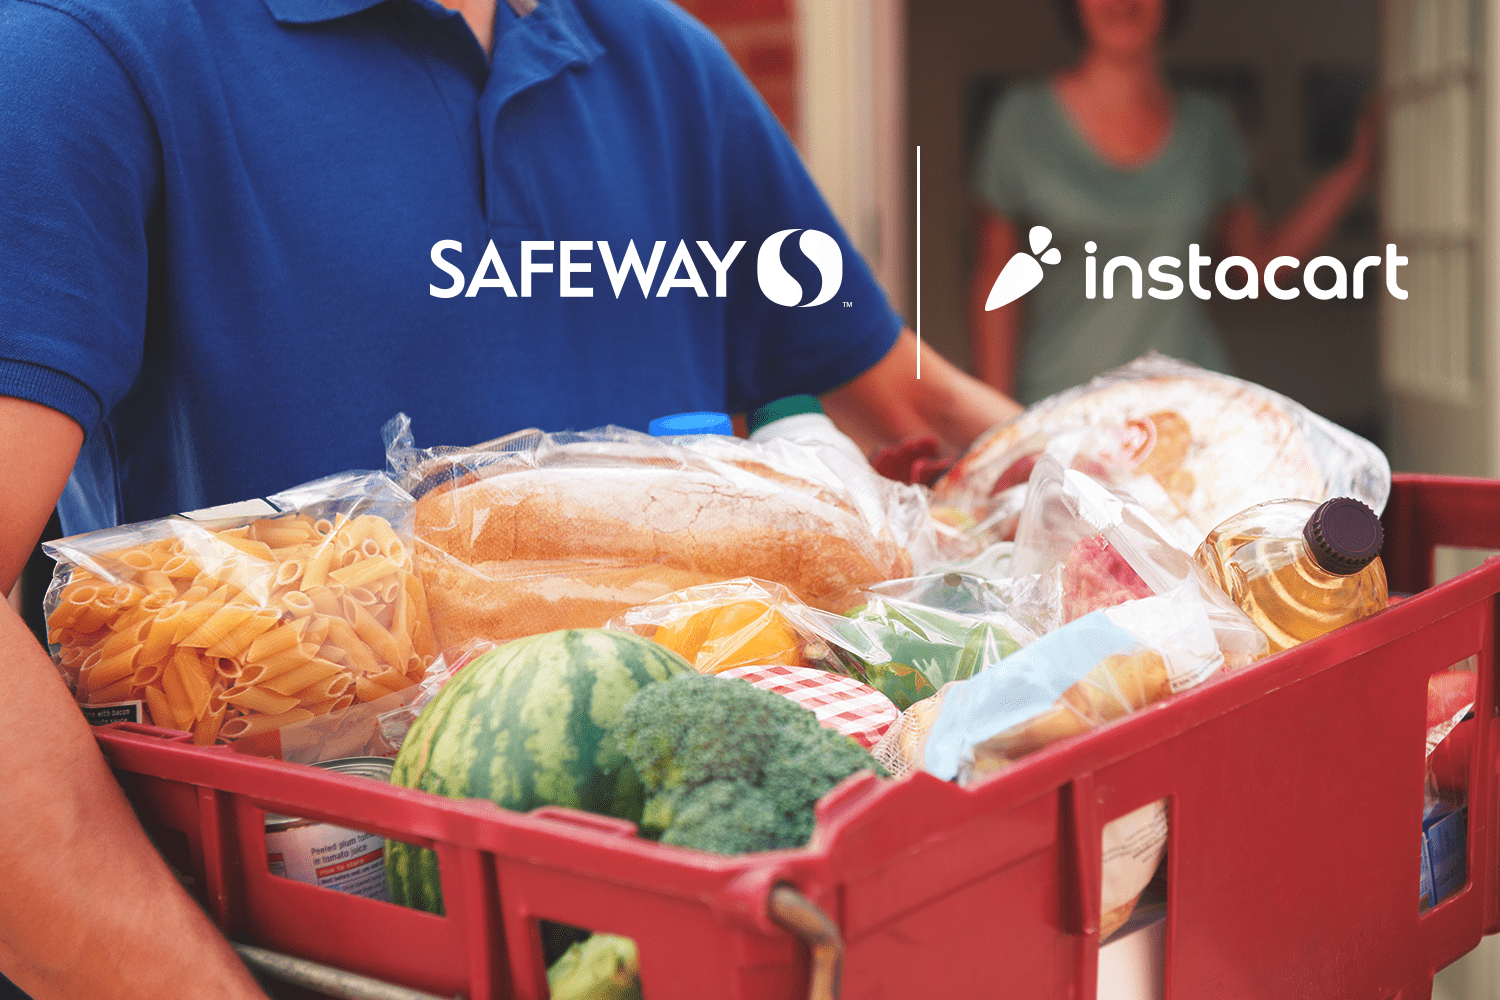 Safeway vs  Instacart: Whose Marketing Delivers a Fresher Service